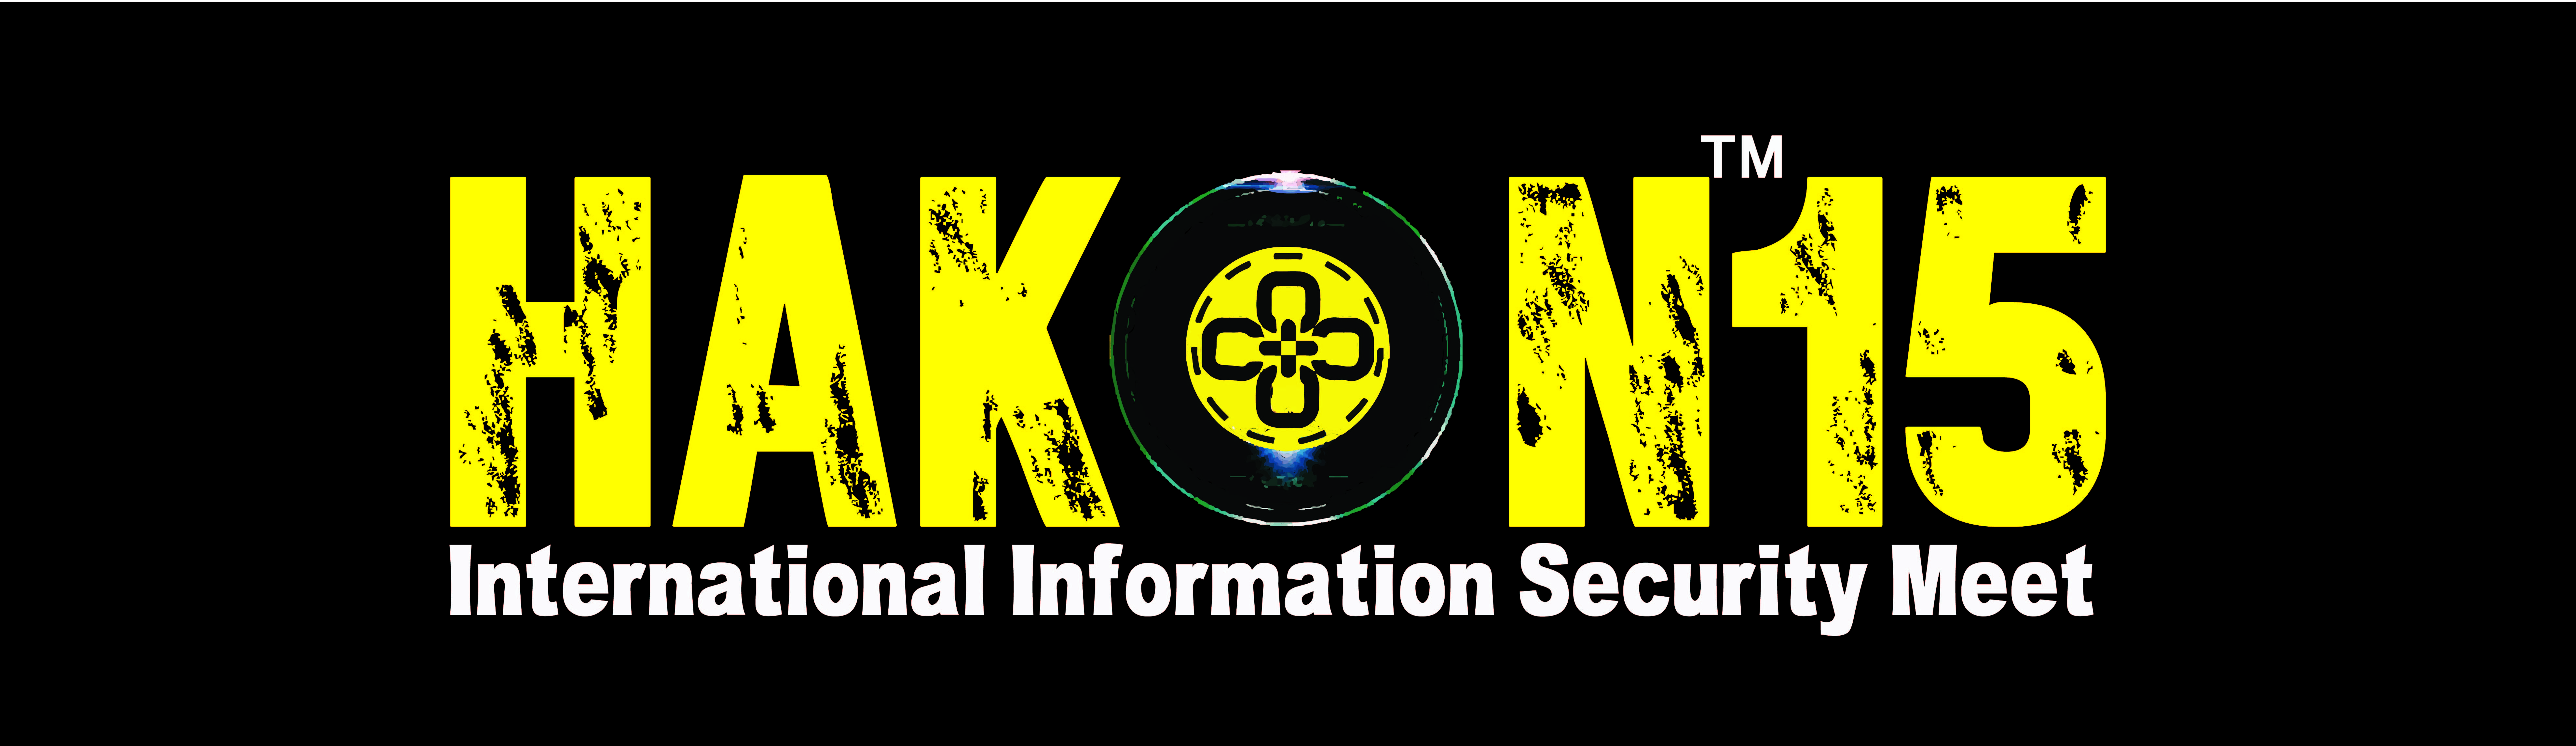 HAKON15 - THE HACKERS MEET -   TERRORSTROM - THE RISE OF DIGITAL TERRORISM  WOMENS INSECURITY